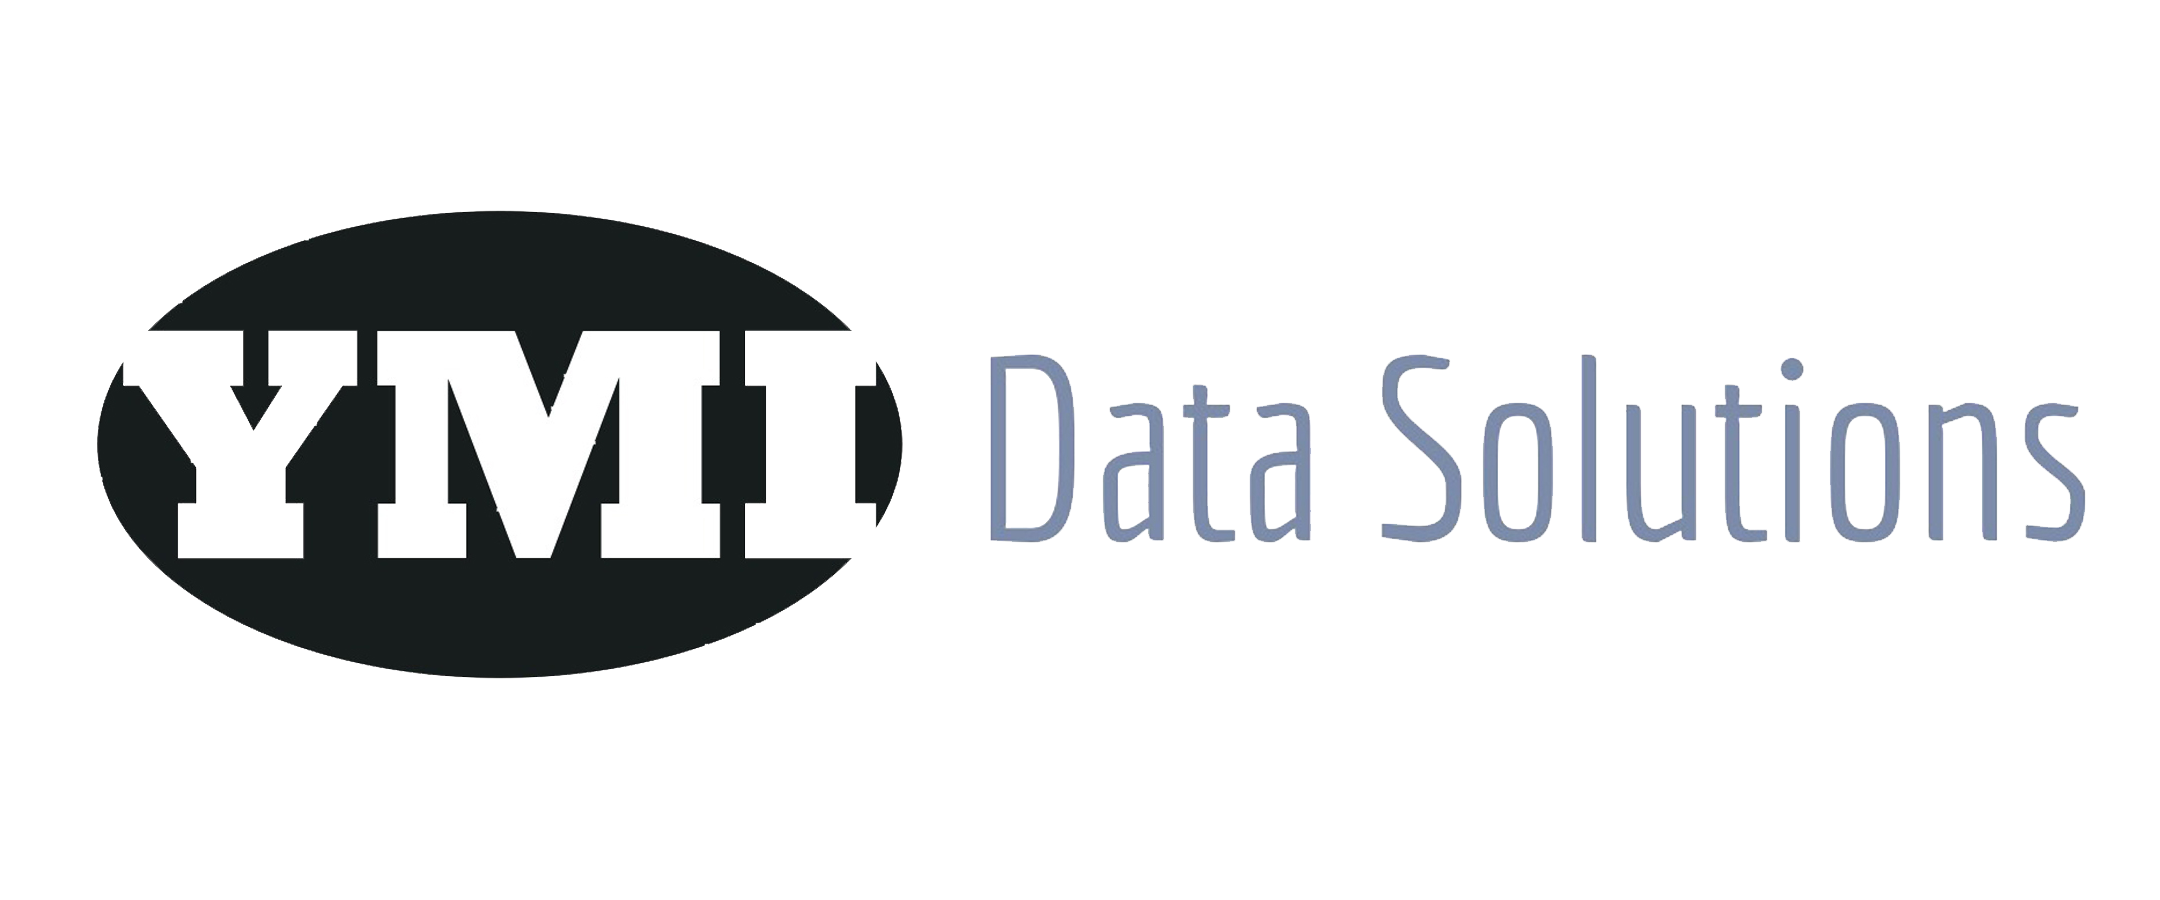 YMI Data Solutions Inc